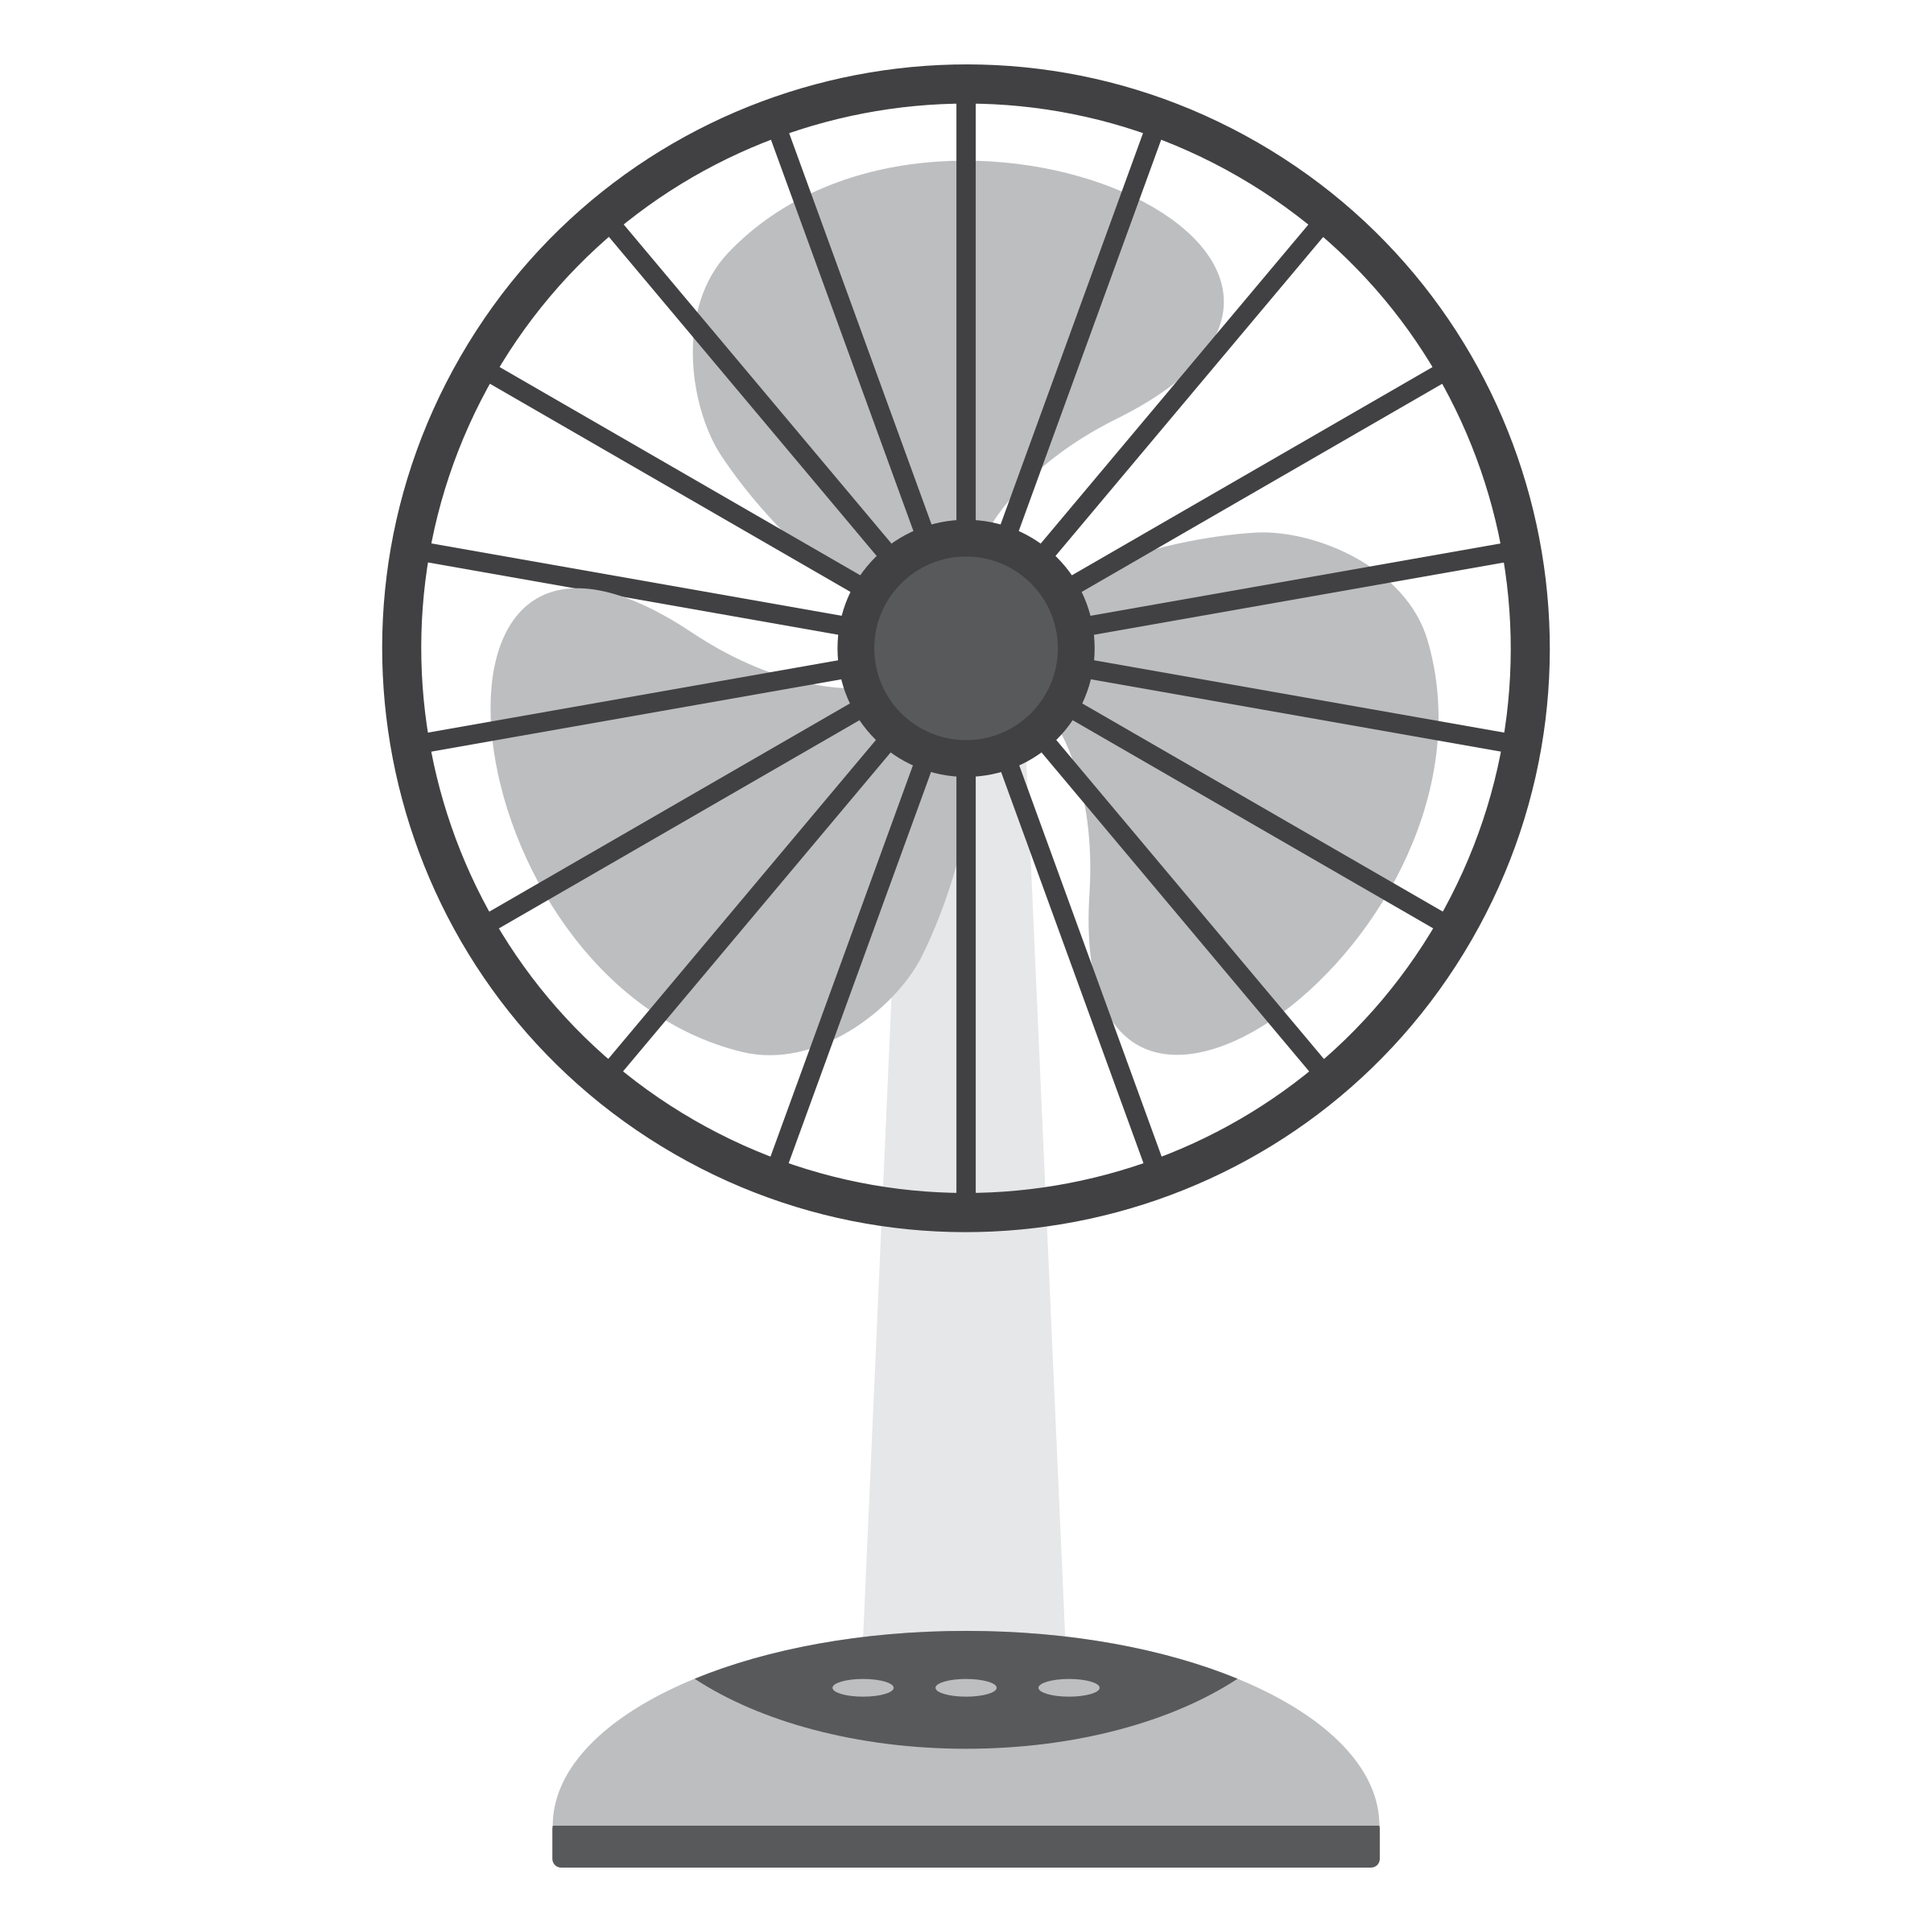 Electric Fan Clip Art : Electric fan vector clipart image free stock photo